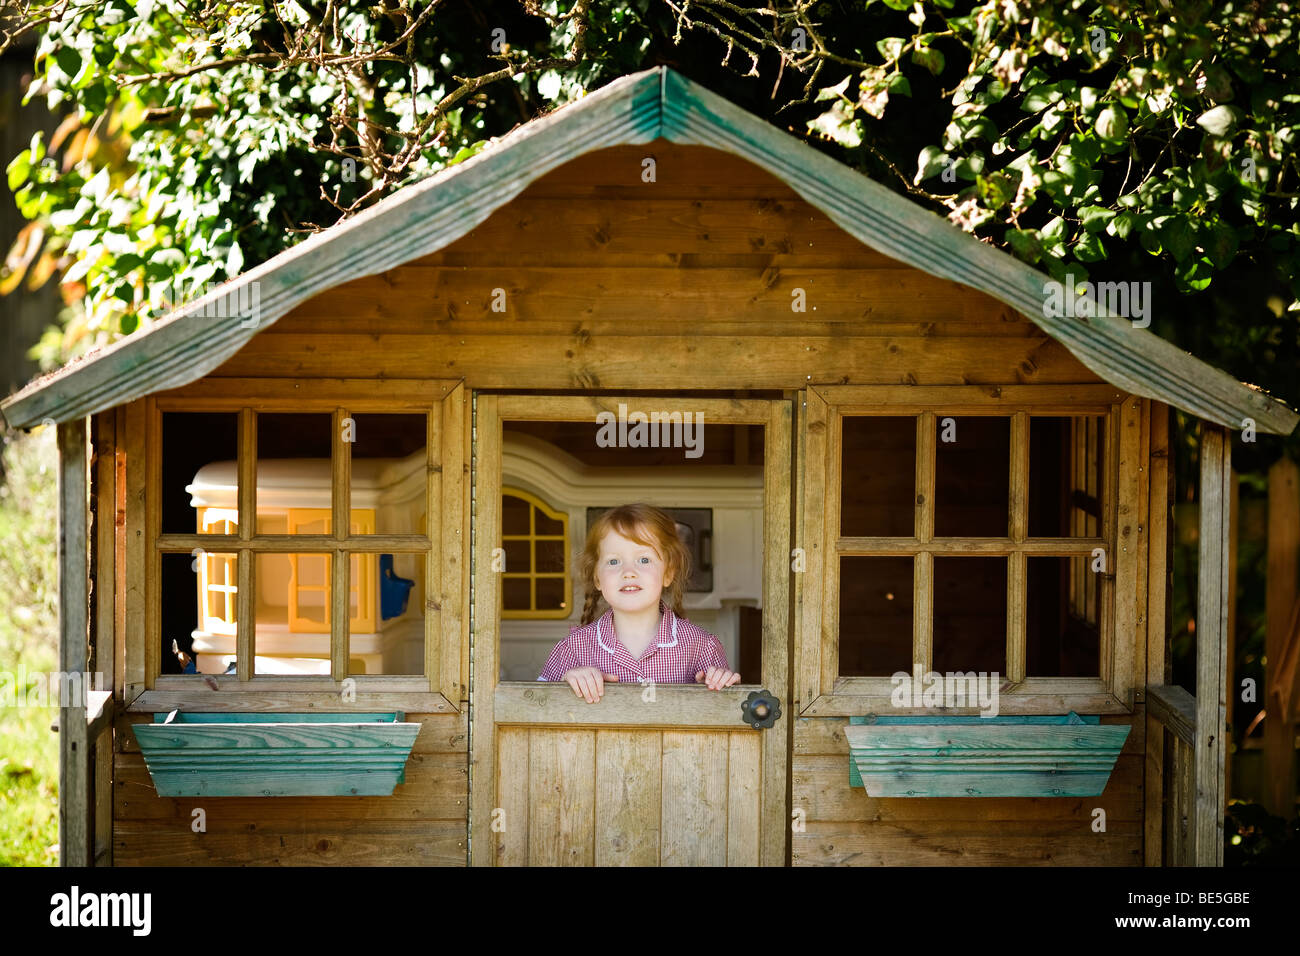 redhead girl in playhouse - Stock Image